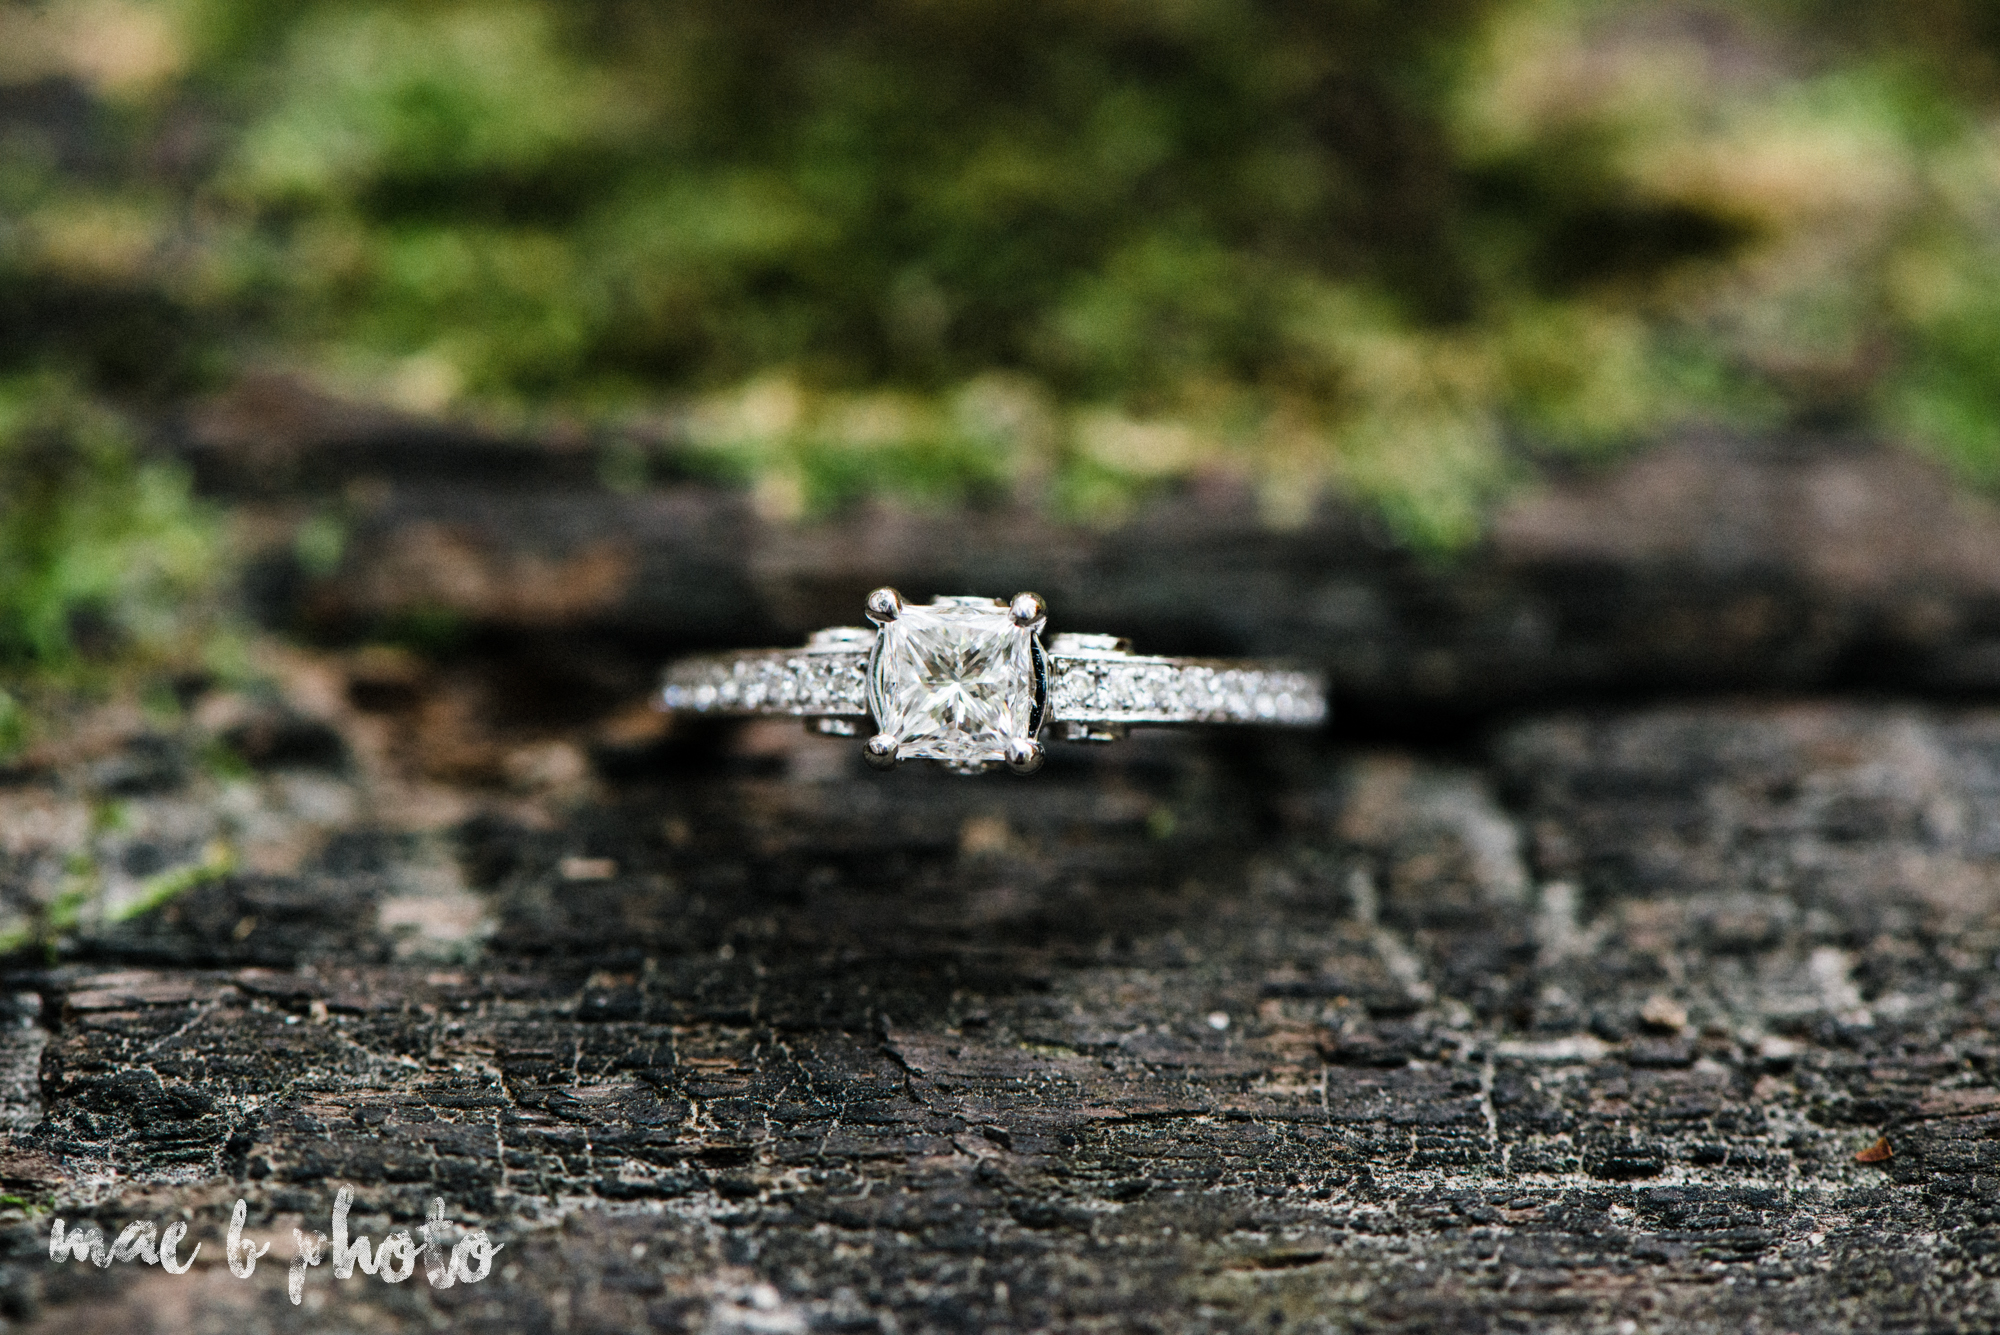 bobbi and pat's intimate fall cabin elopement in hocking hills old man's cave and rock house in logan ohio photographed by youngstown wedding photographer mae b photo-11.jpg